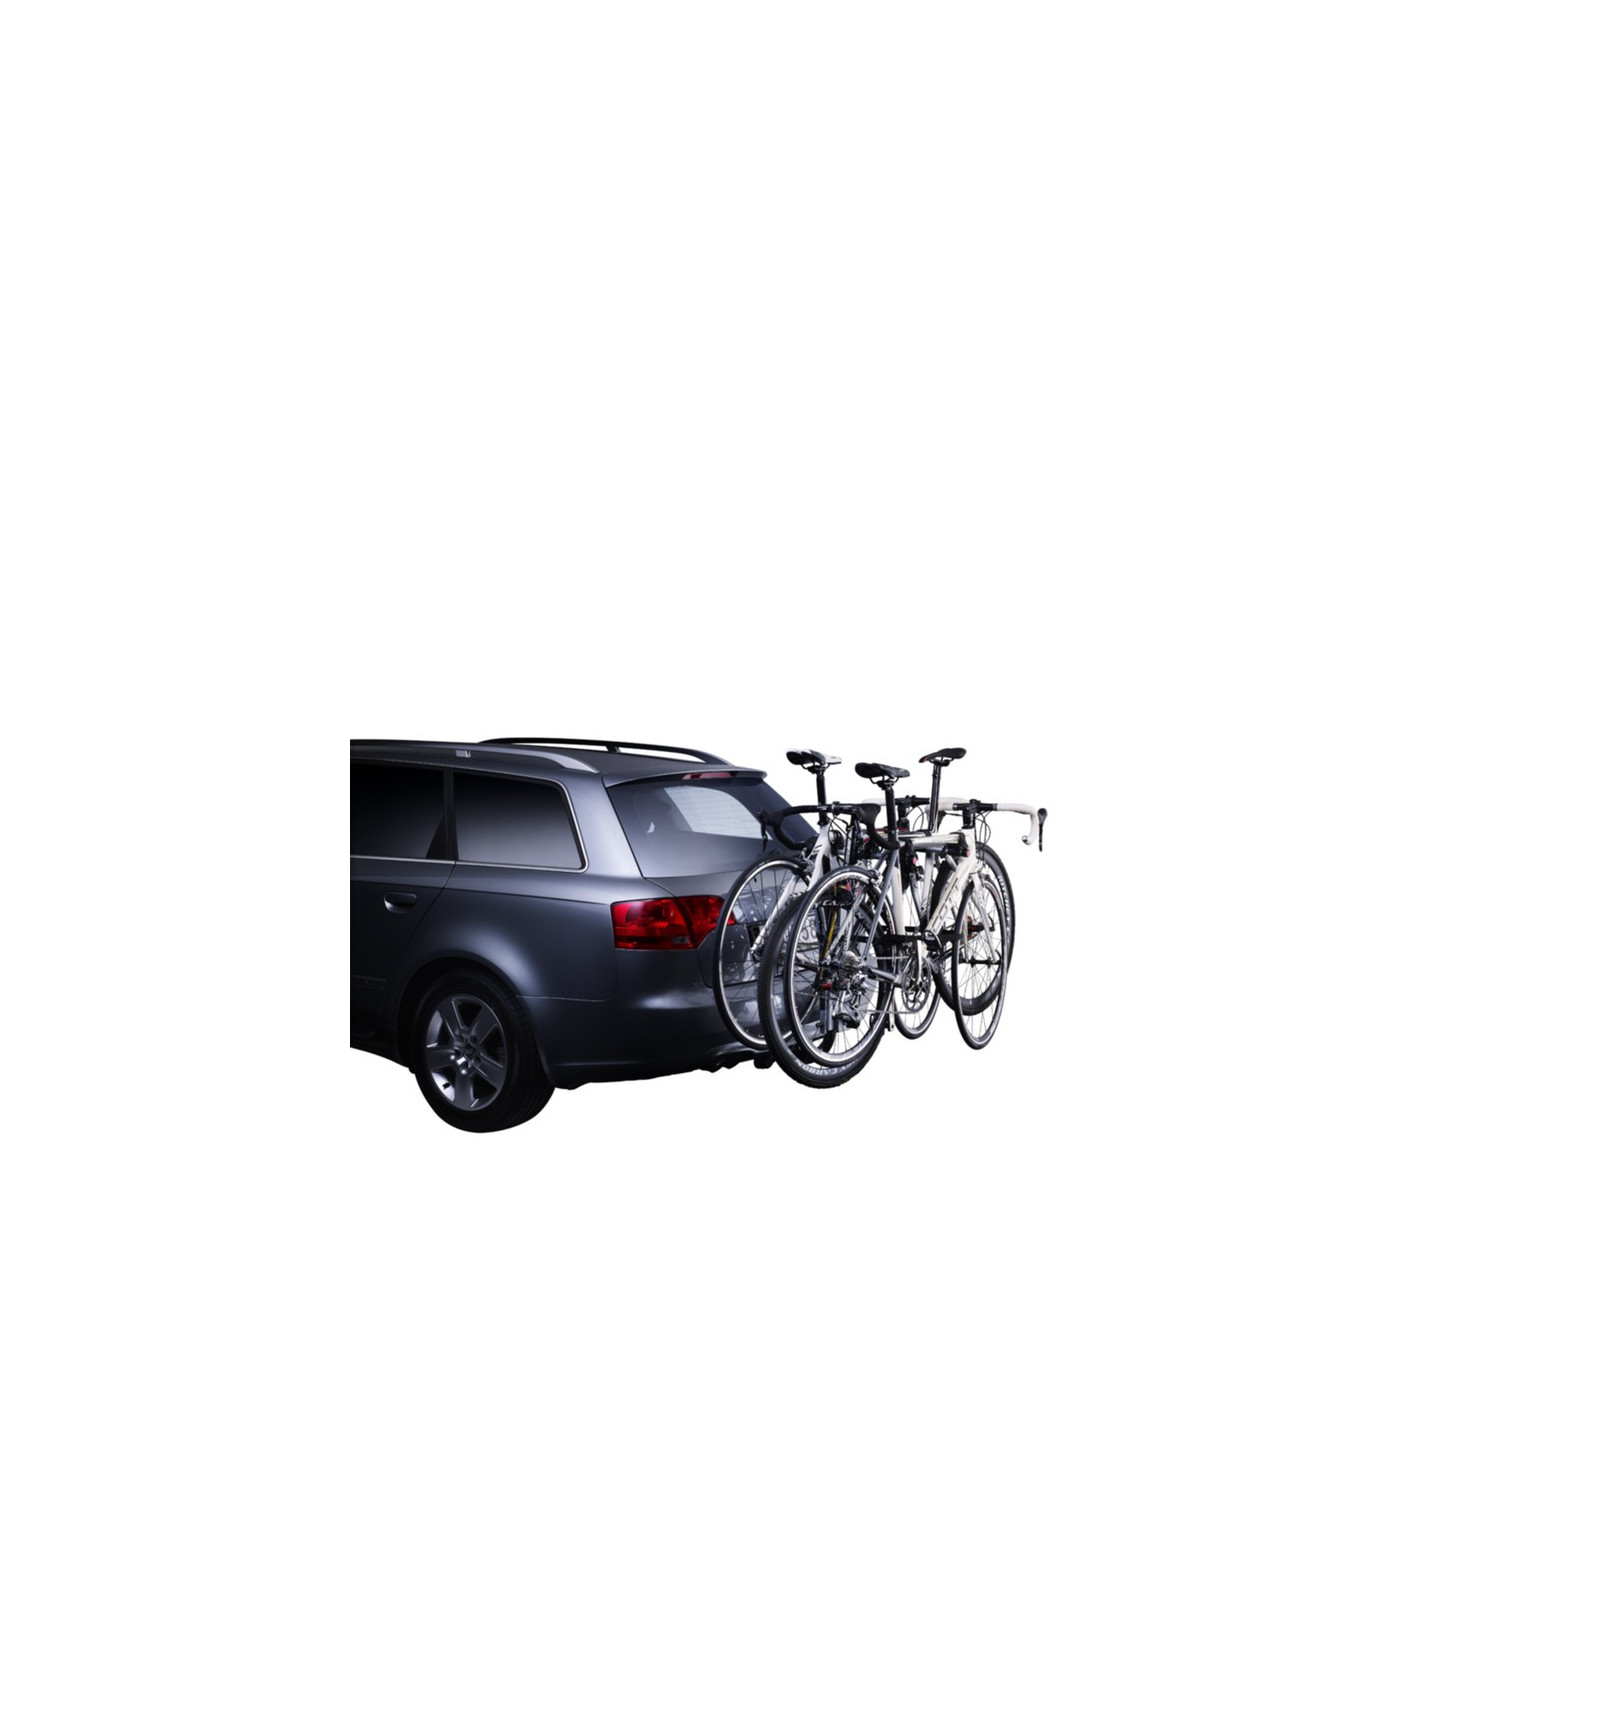 porte velo attache remorque hangon 3bike avec inclinaison thule alpinstore. Black Bedroom Furniture Sets. Home Design Ideas